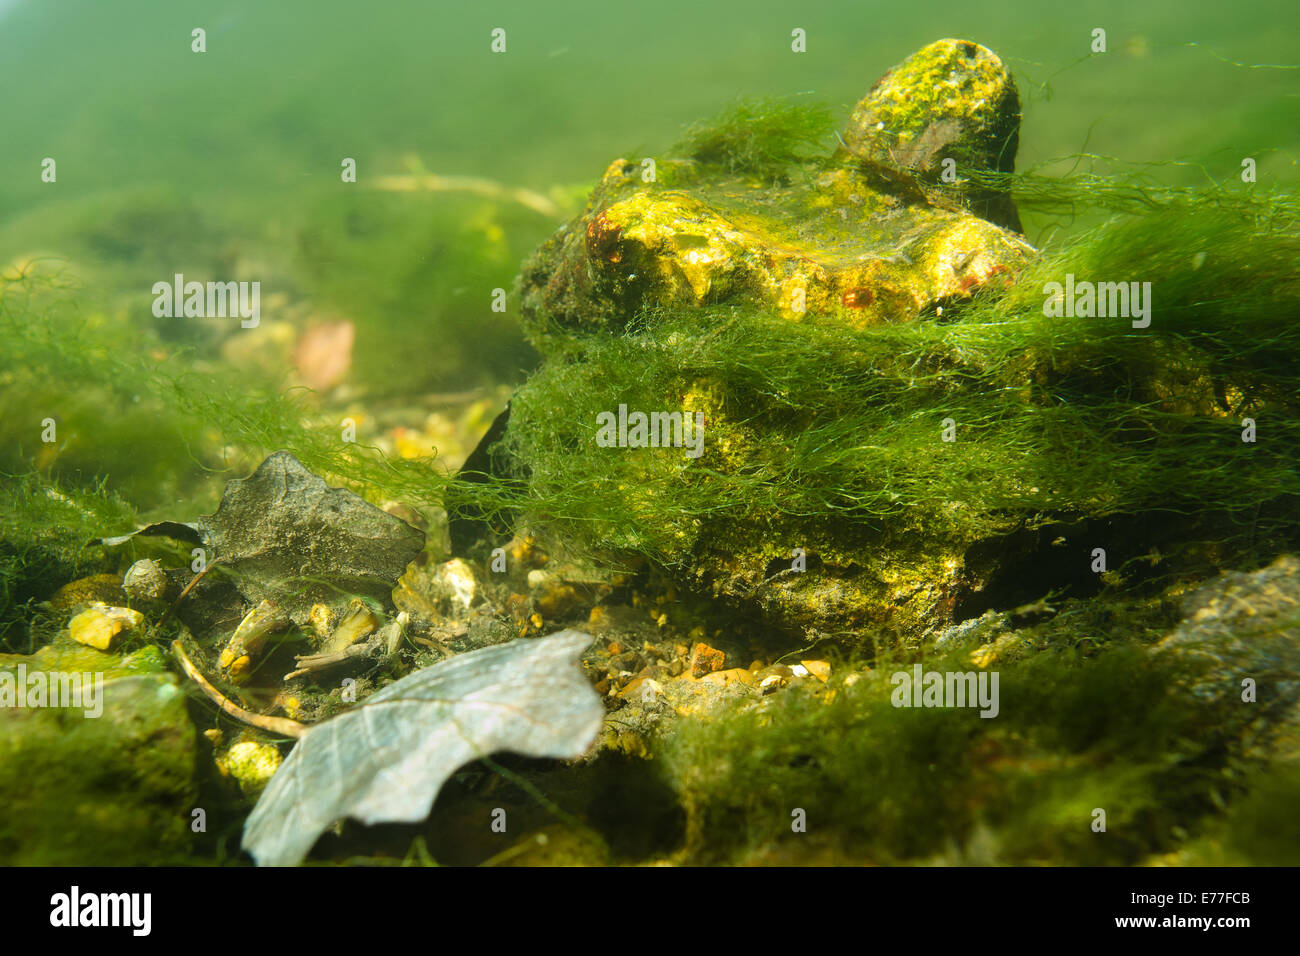 Bottom of river darent riverbed freshwater clear in sunshine yet full of algal weed rays of sunshine streaking thought - Stock Image